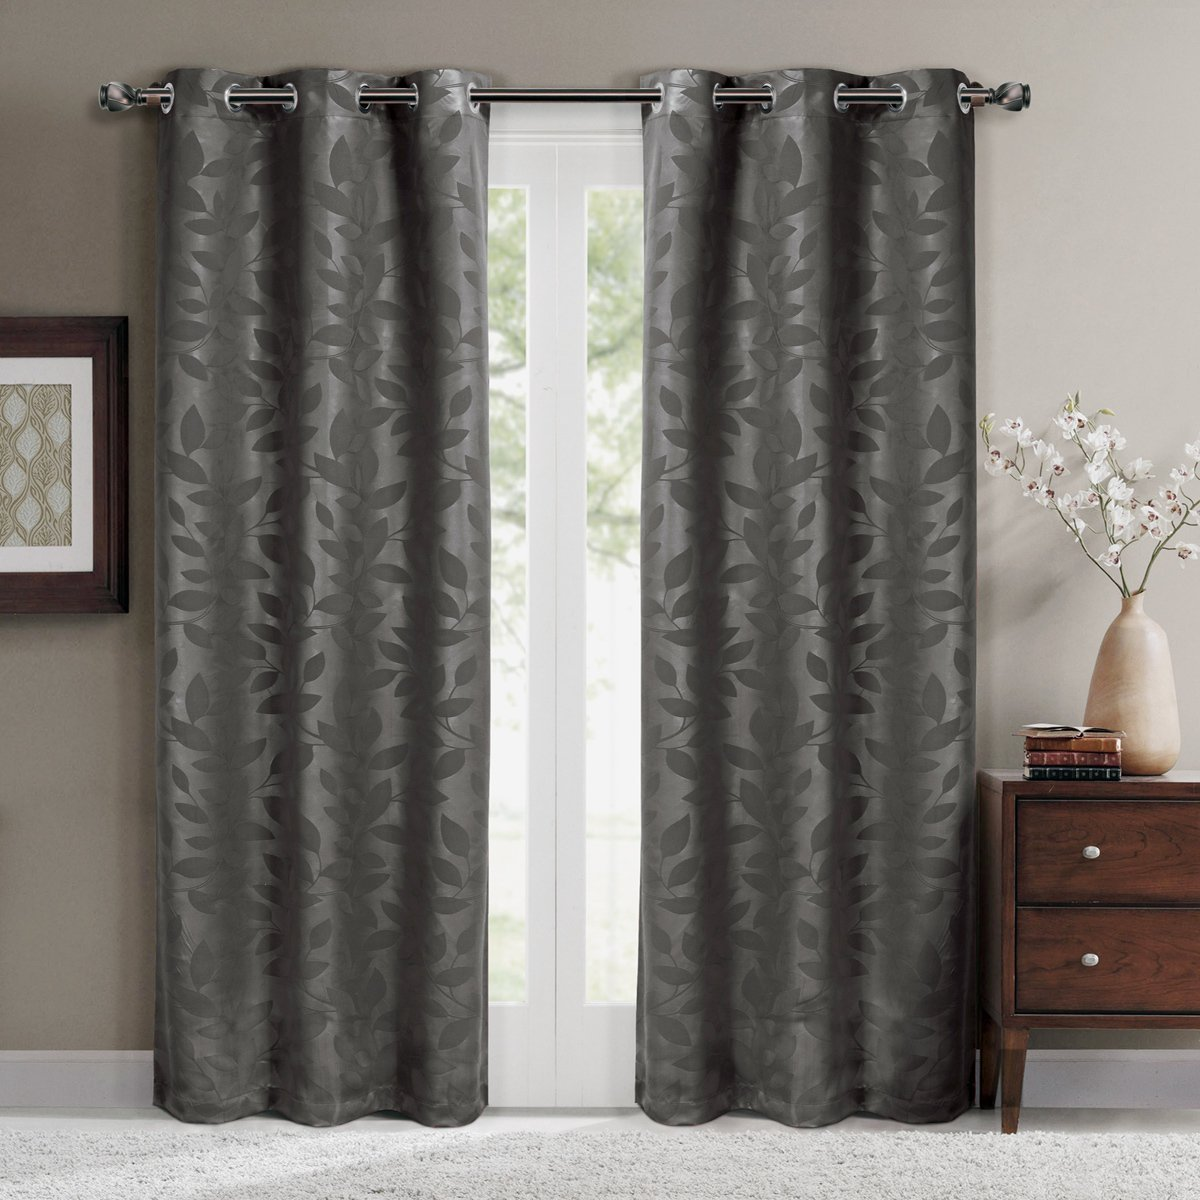 Sound Blocking Curtains Soundproof Curtains Noise Reducing Curtains Custom Acoustic Sound